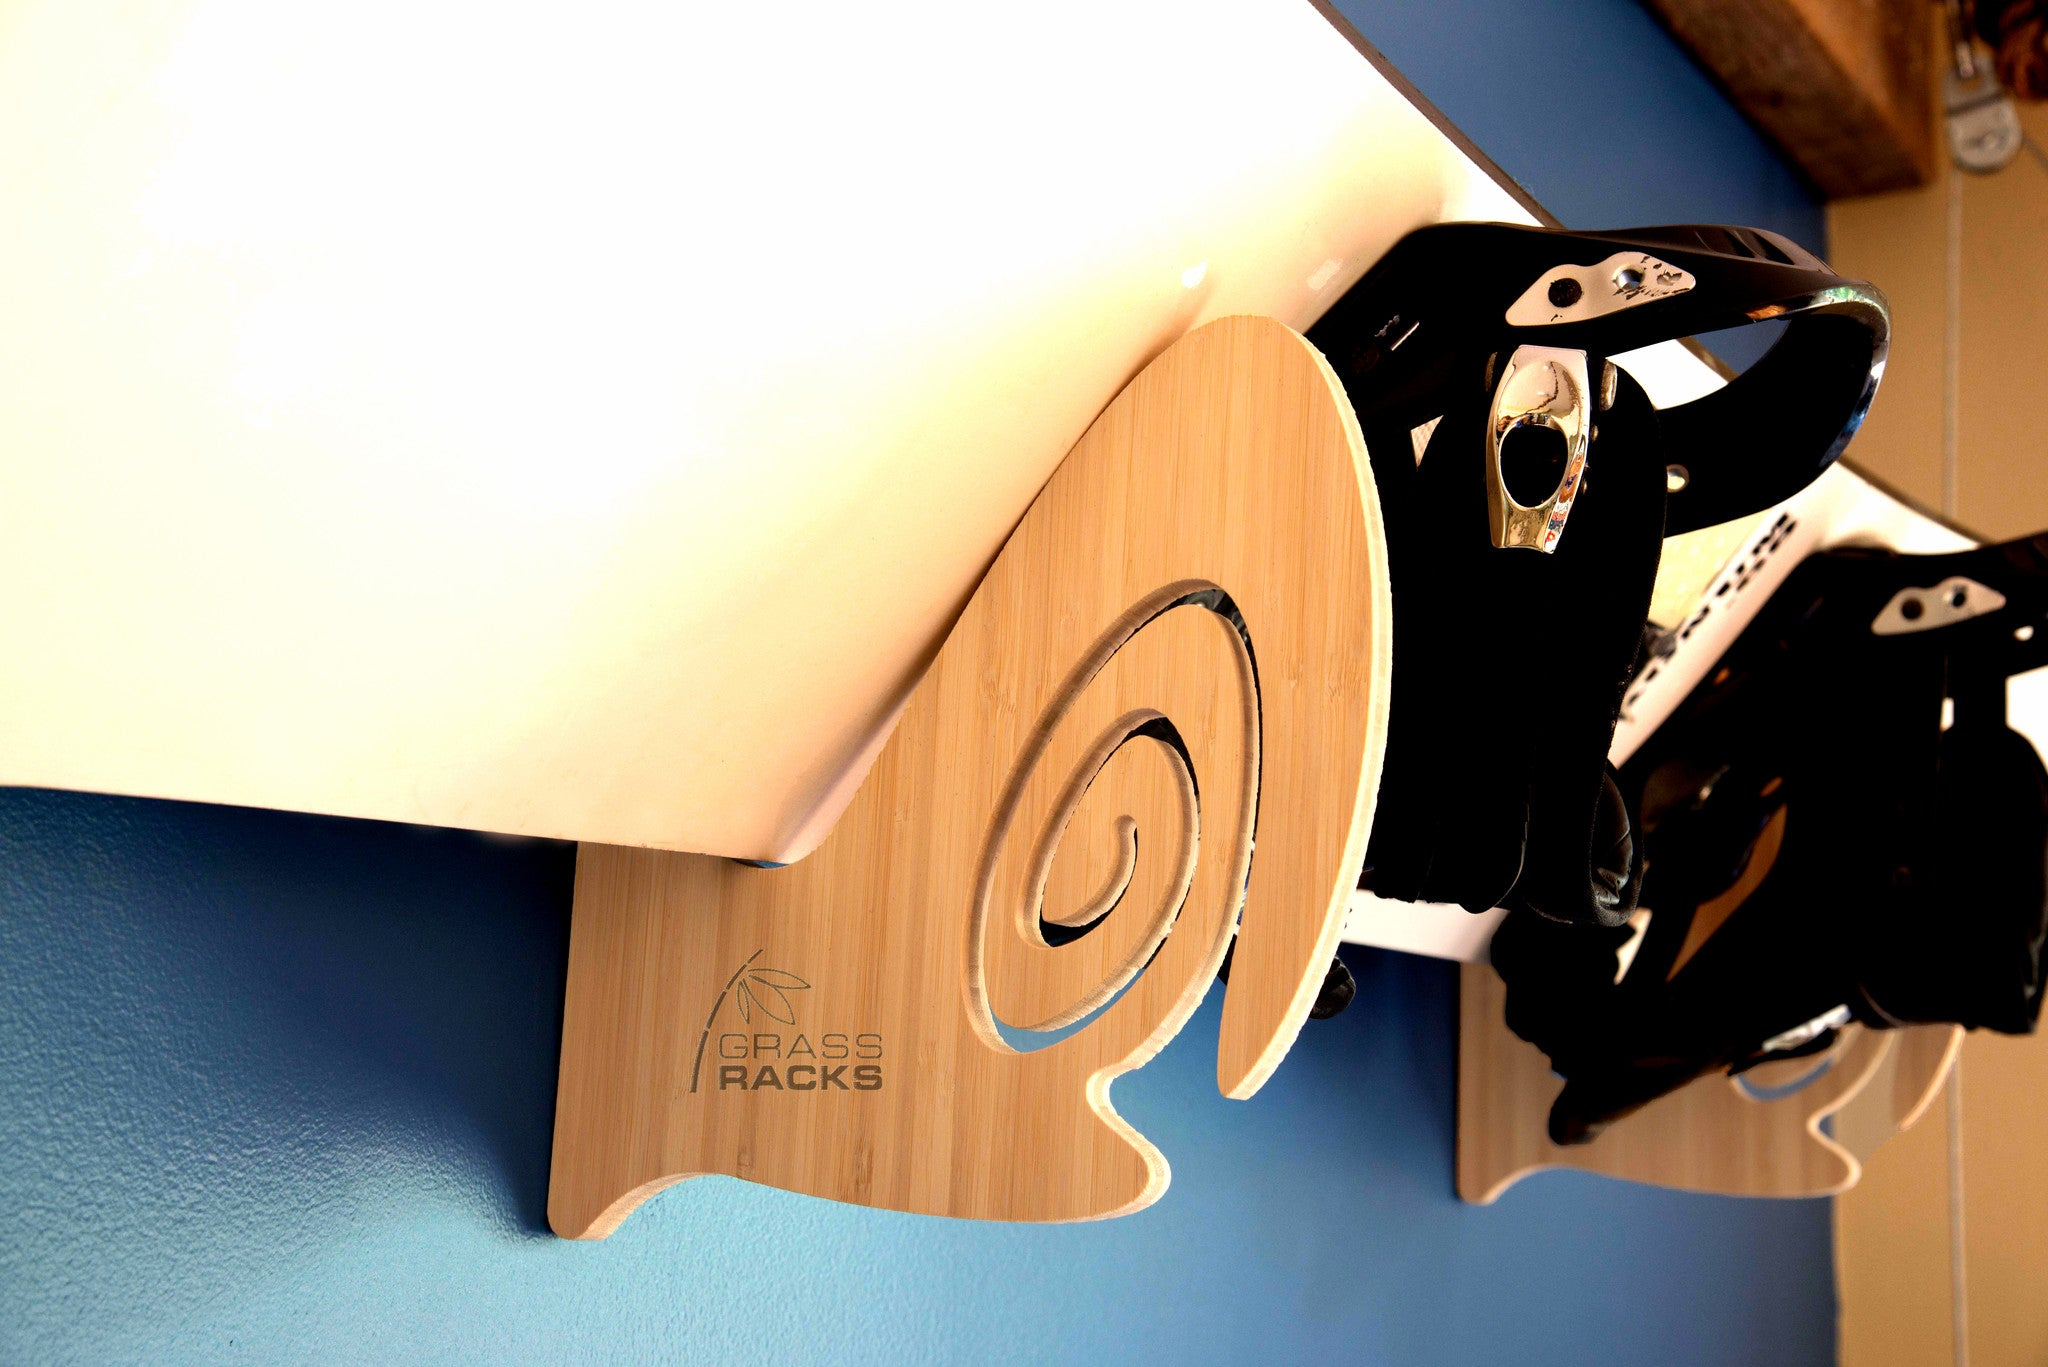 Surfboard Storage - Grassracks Tripped Barrel Board Rack